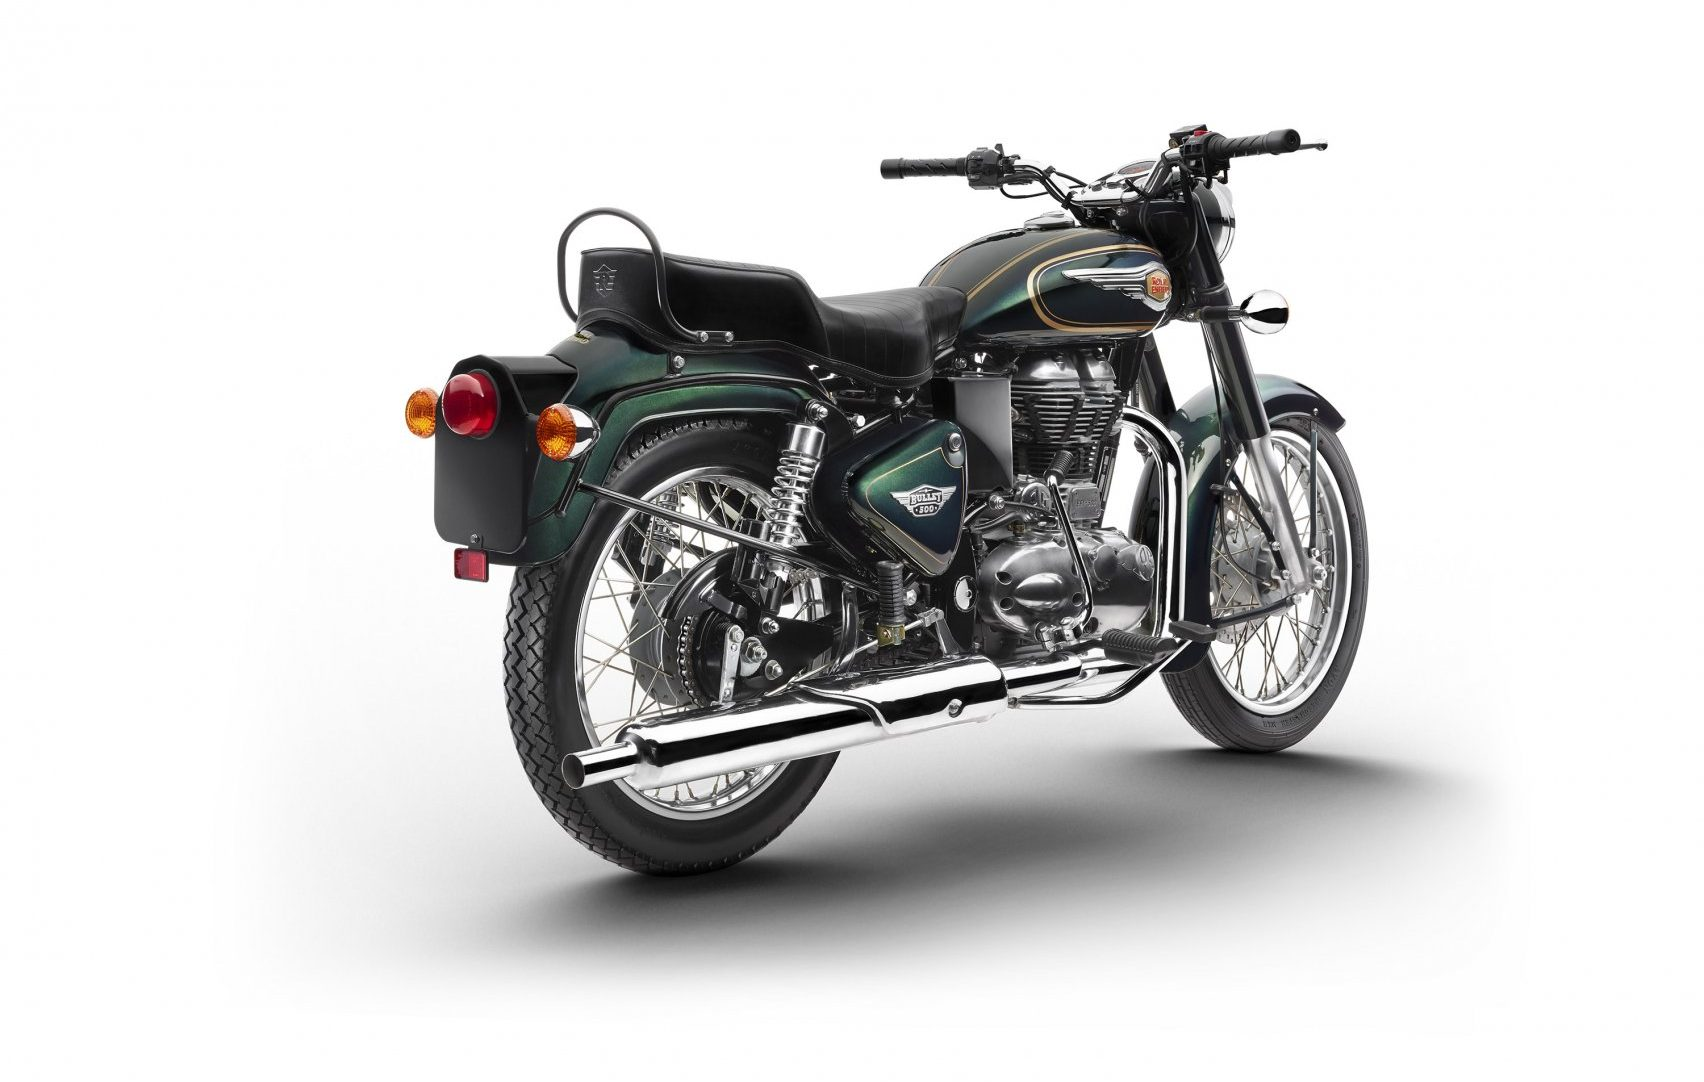 Royal enfield Bullet 500 3